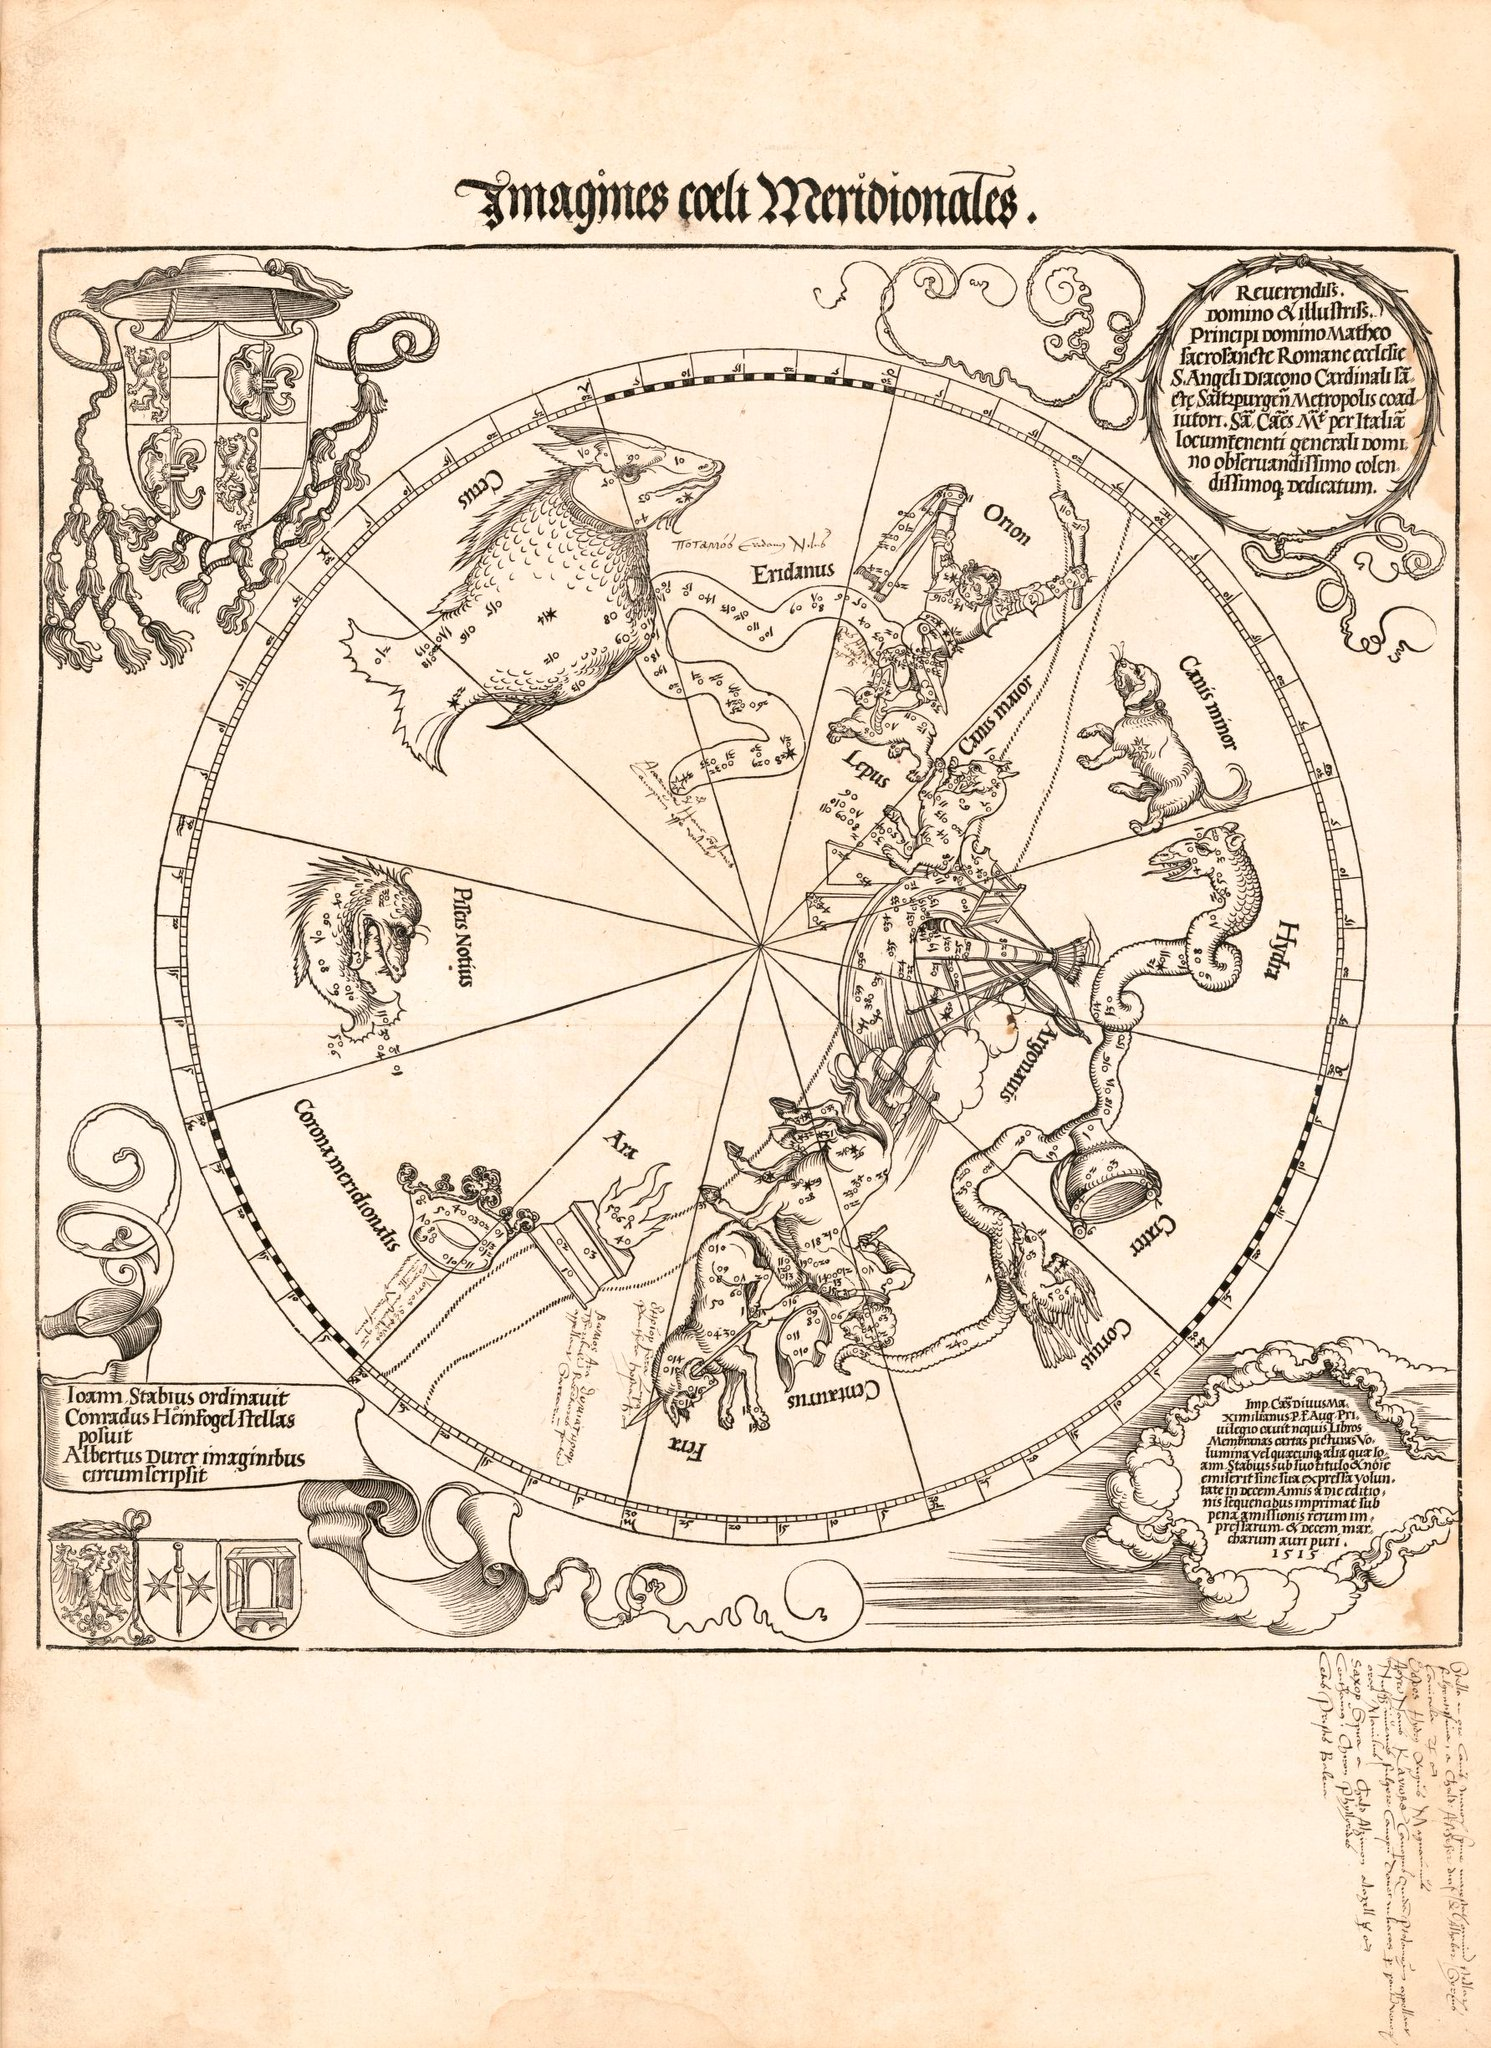 Every map has a story. Read about the history of the Schöner Sammelband in one of our earliest blog posts! https://t.co/k4gp92xVvx https://t.co/ADs9QVxqWW